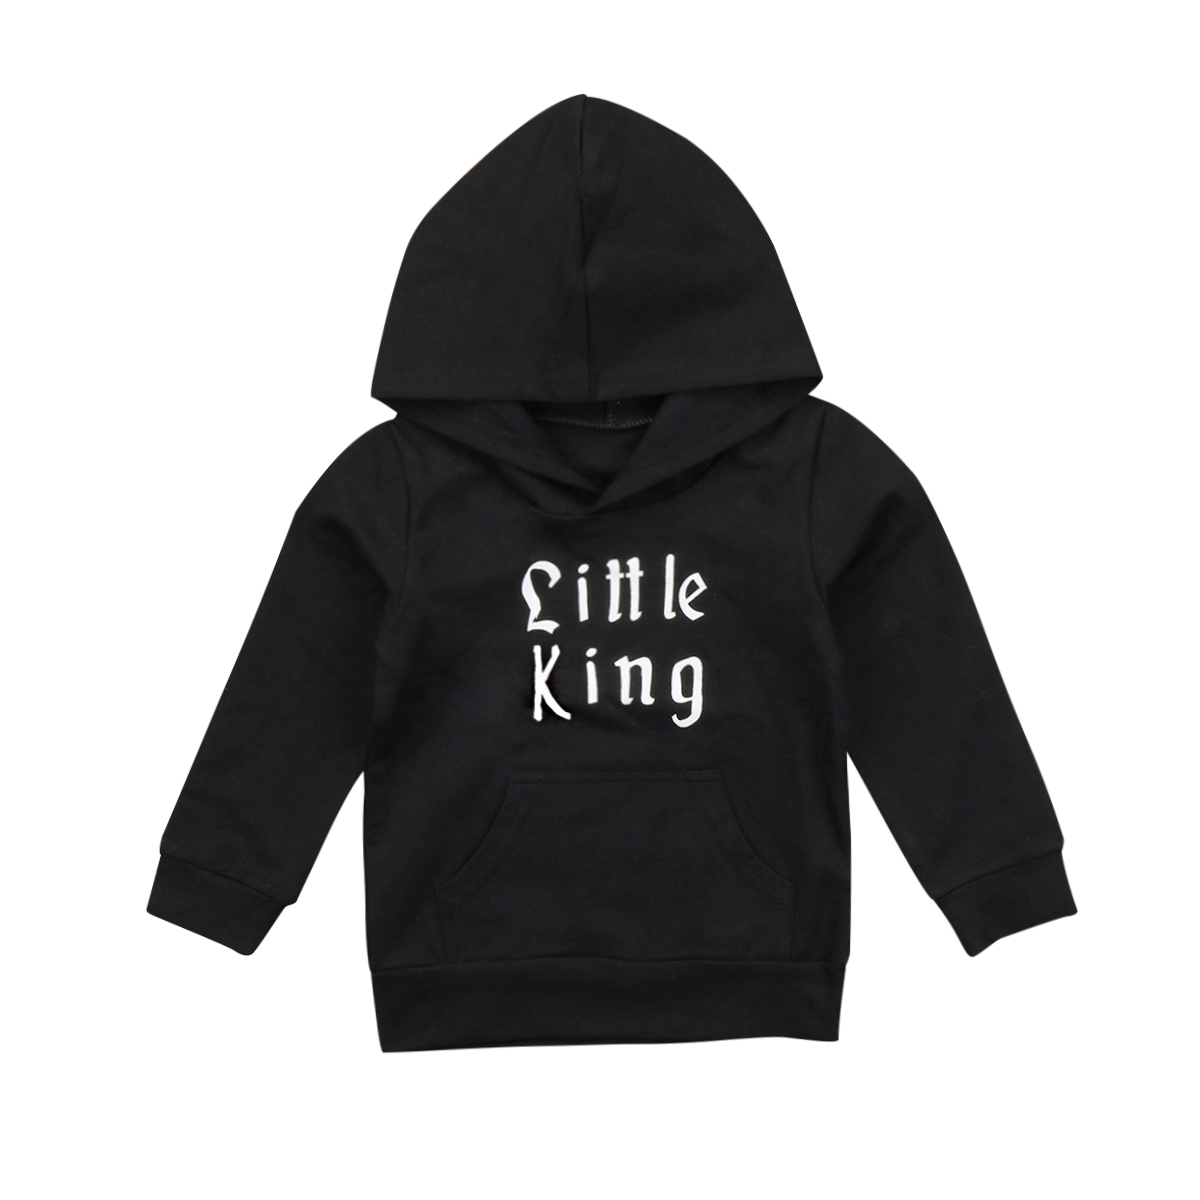 Fashion Toddler Kids Baby Boys Outwear Hooded Hoodies Top Outerfits Casual Letters Printed Baby Boy Hoodies